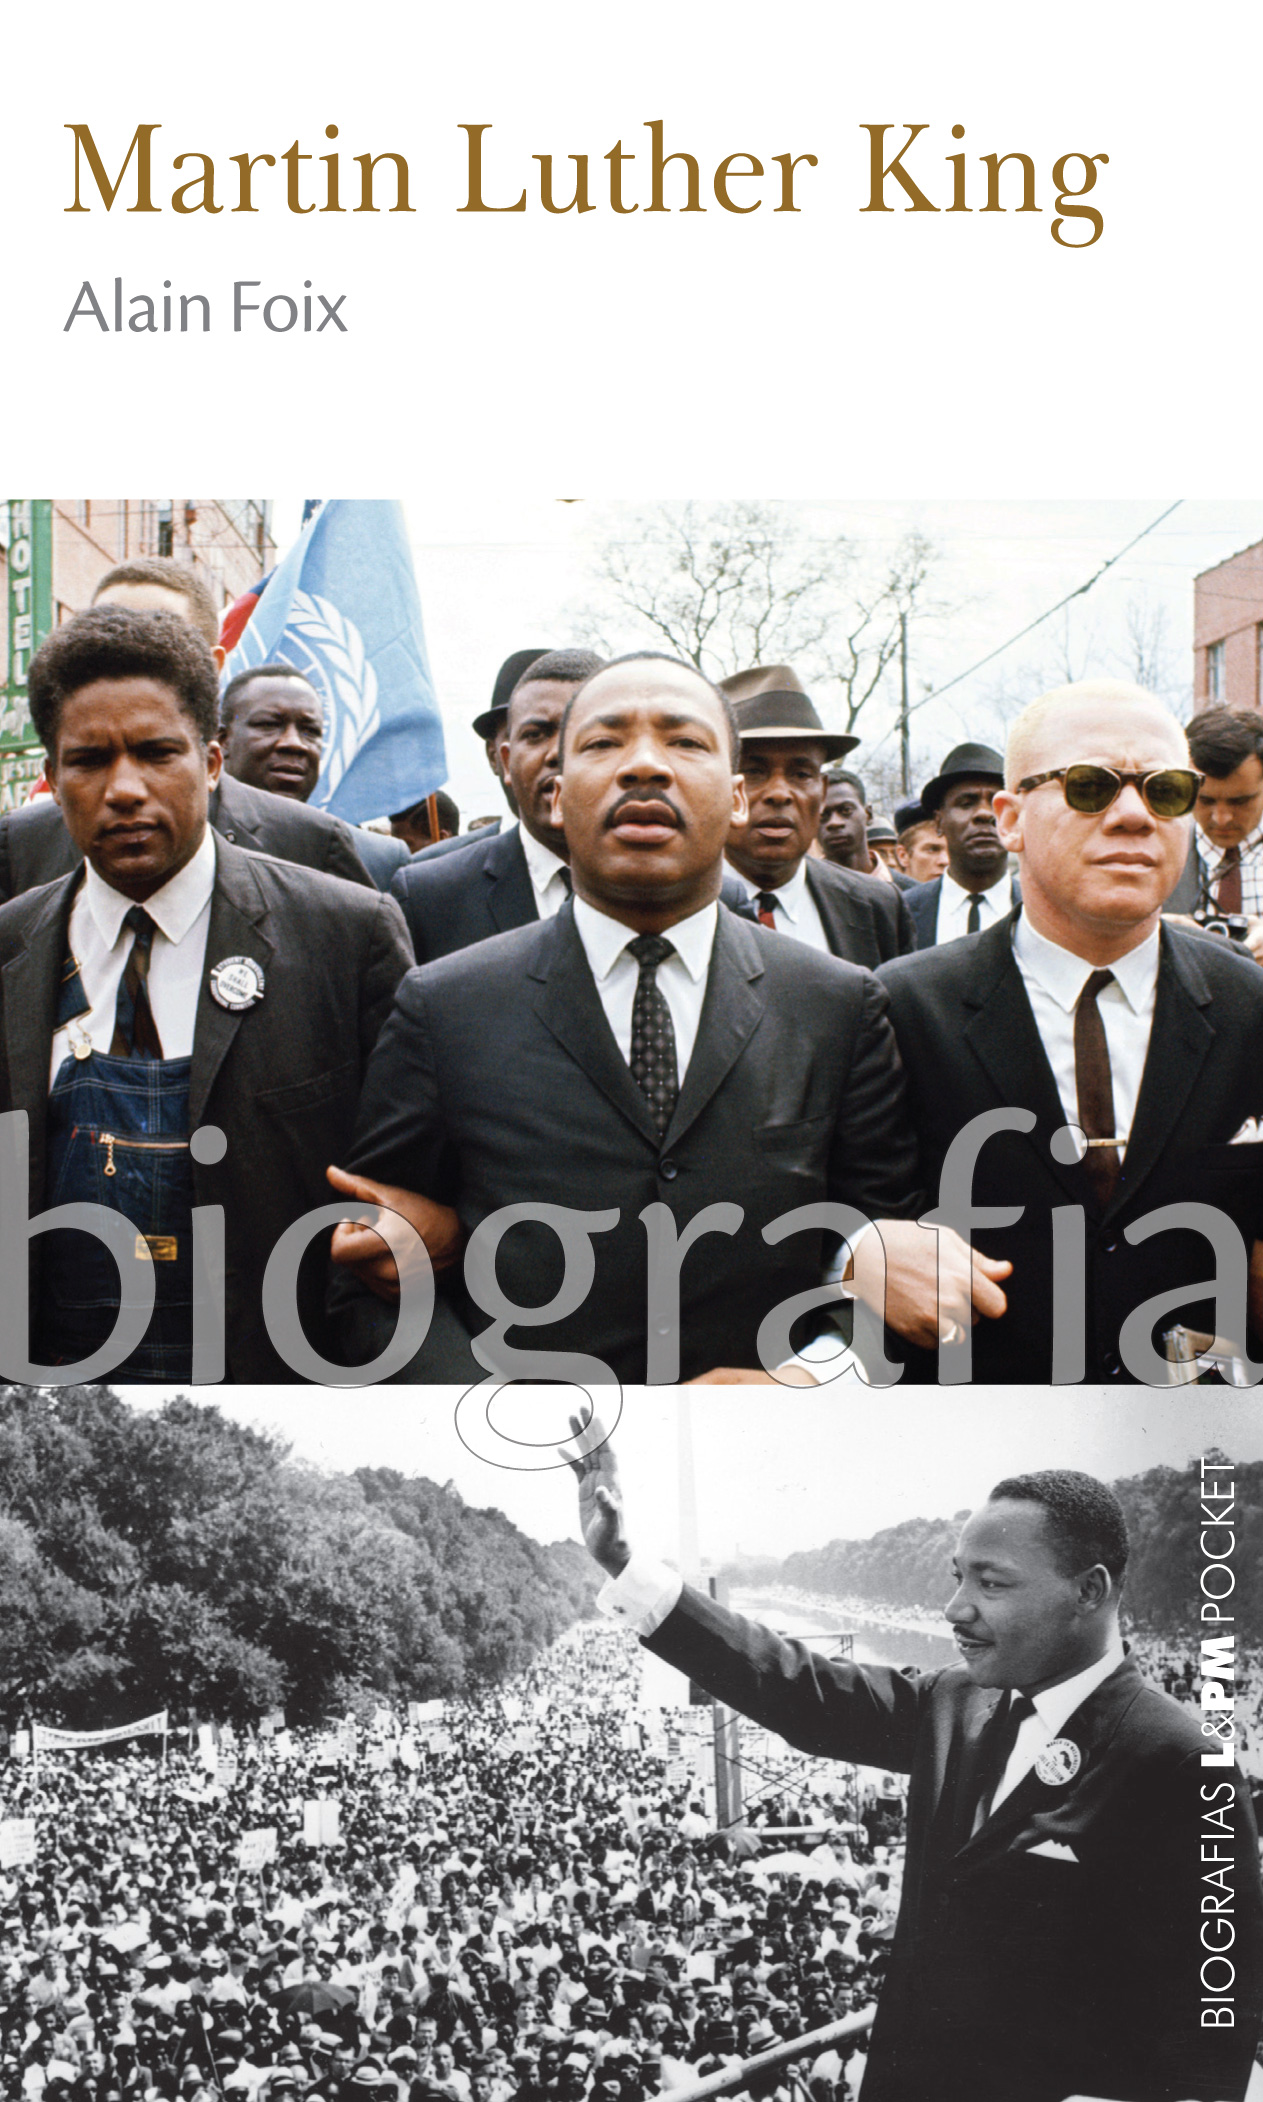 martin luther king bio Unauthorized biography of martin luther king, jr and barack obama lyrics:  yeah, the unauthorized copyspecial edition / dedicated to the dreamer, martin .